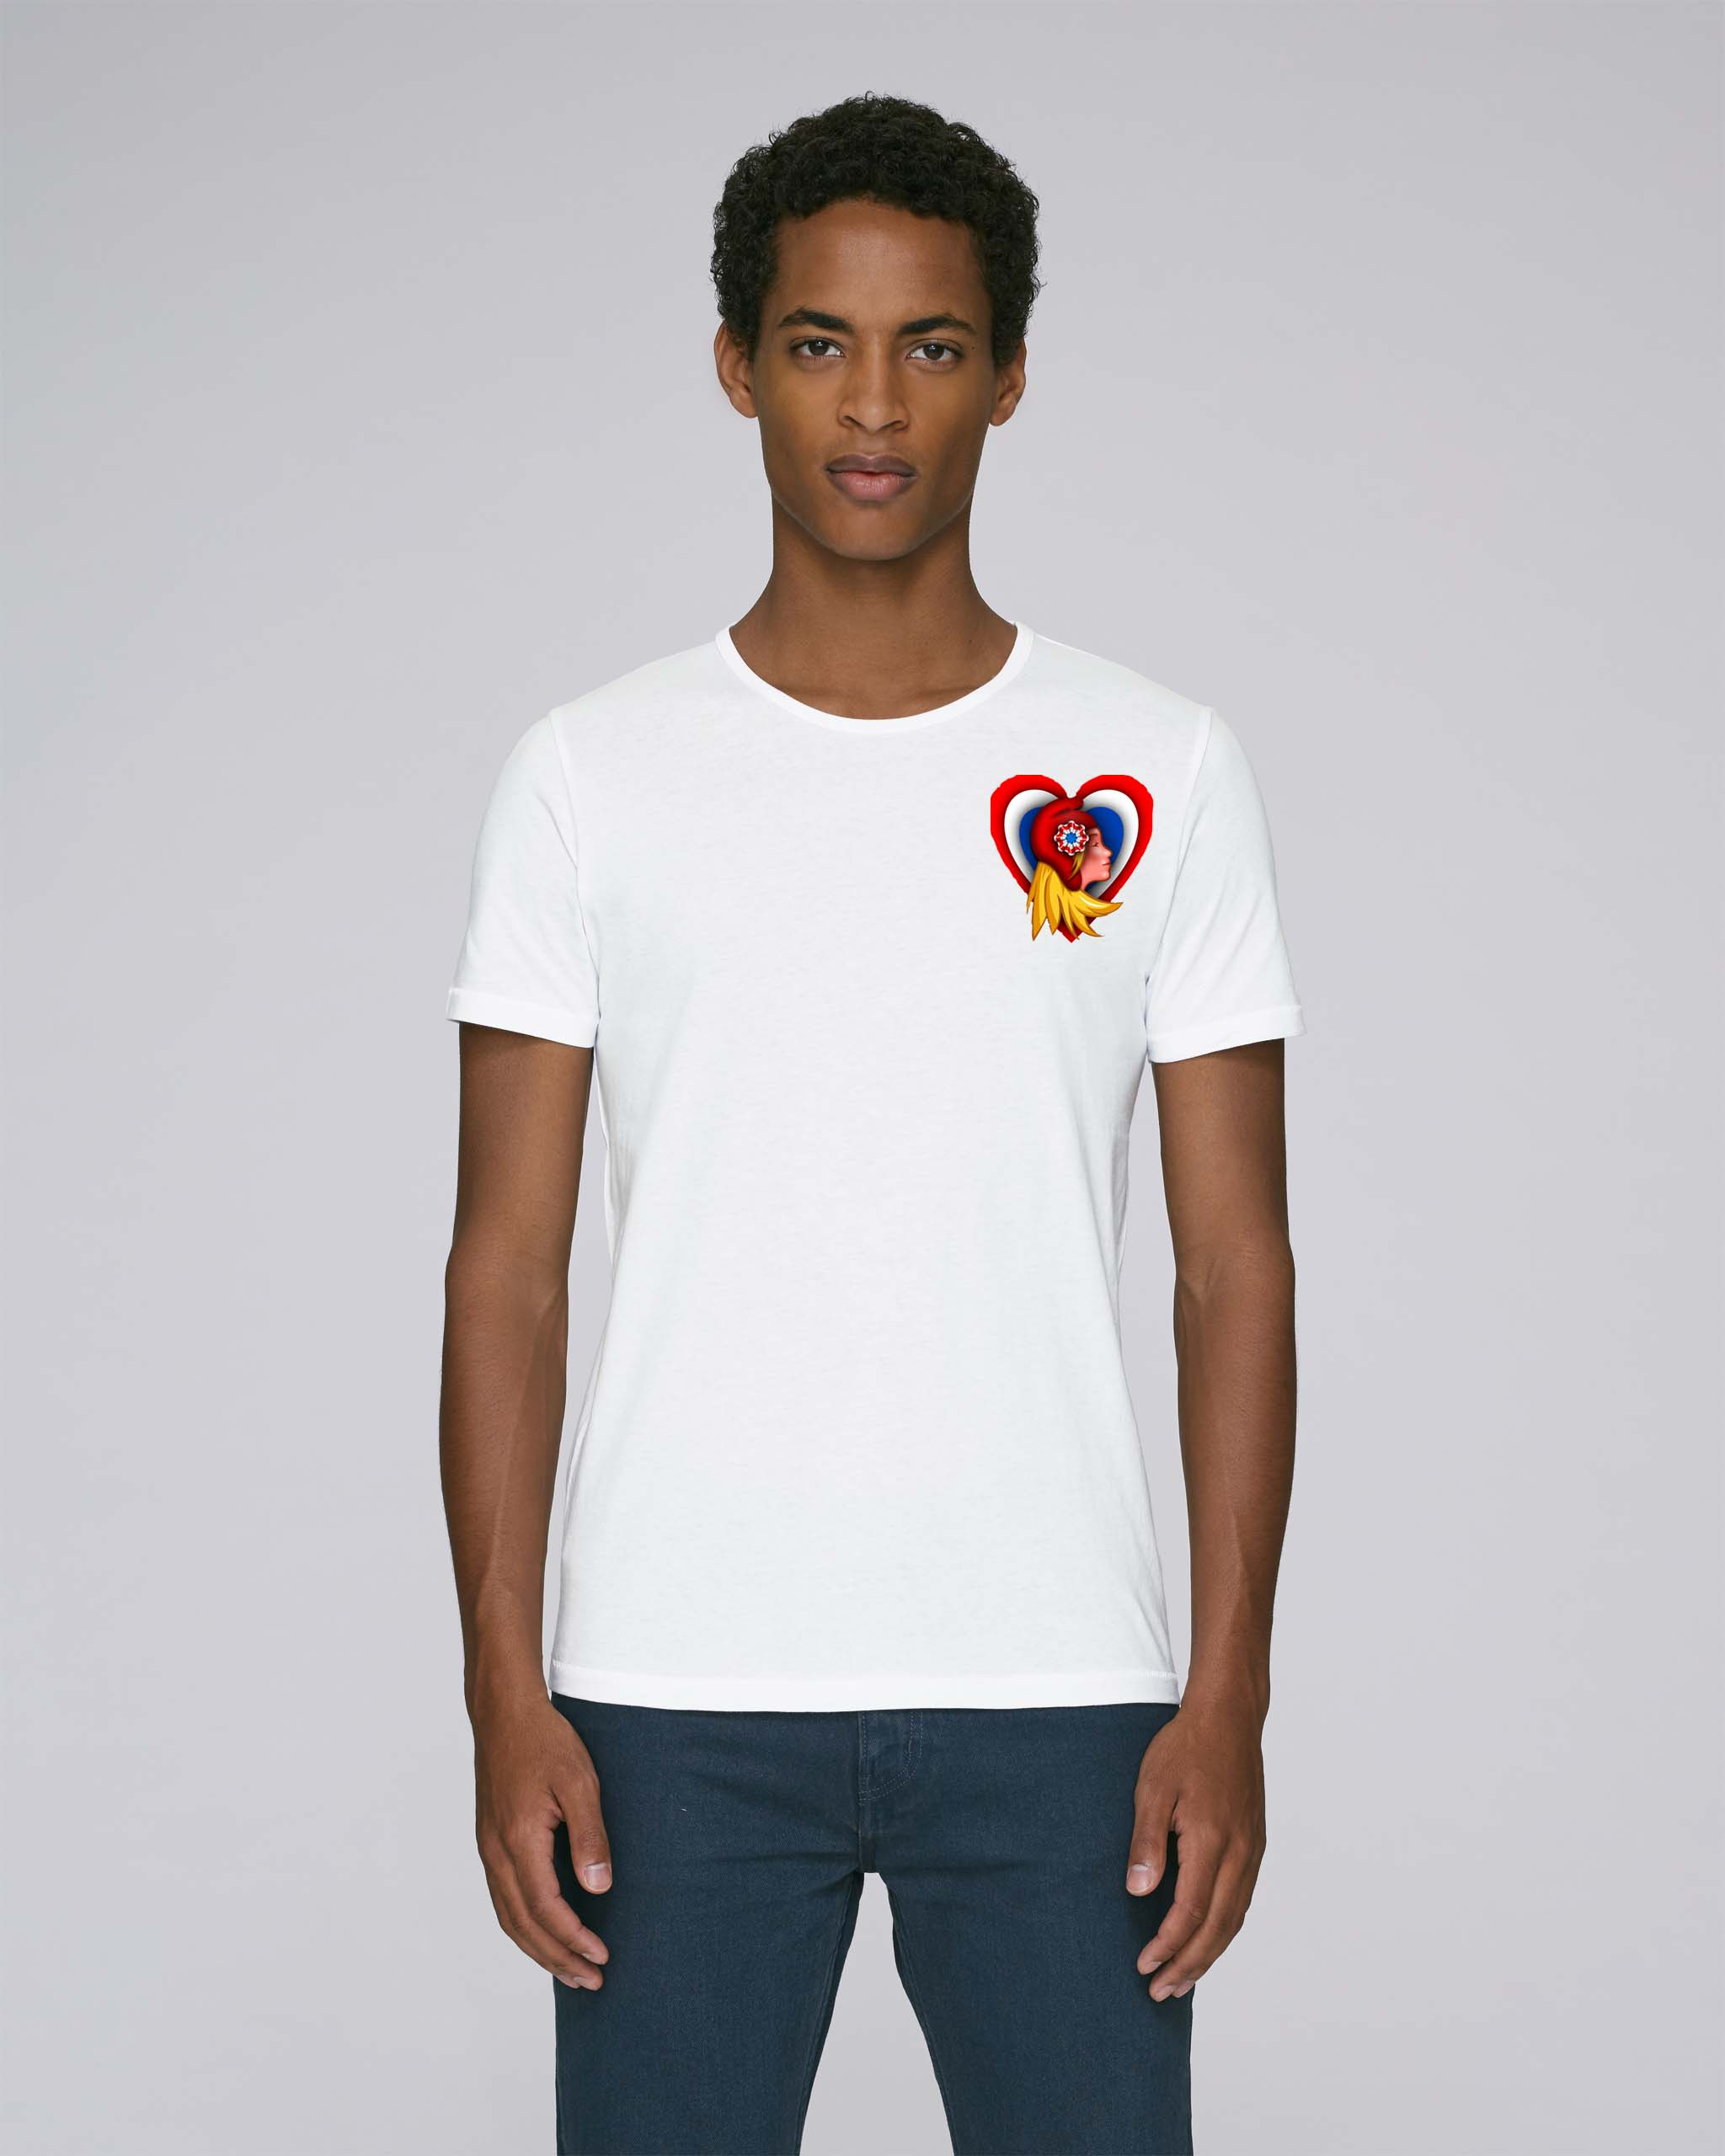 t-shirt blanc homme - French love tee